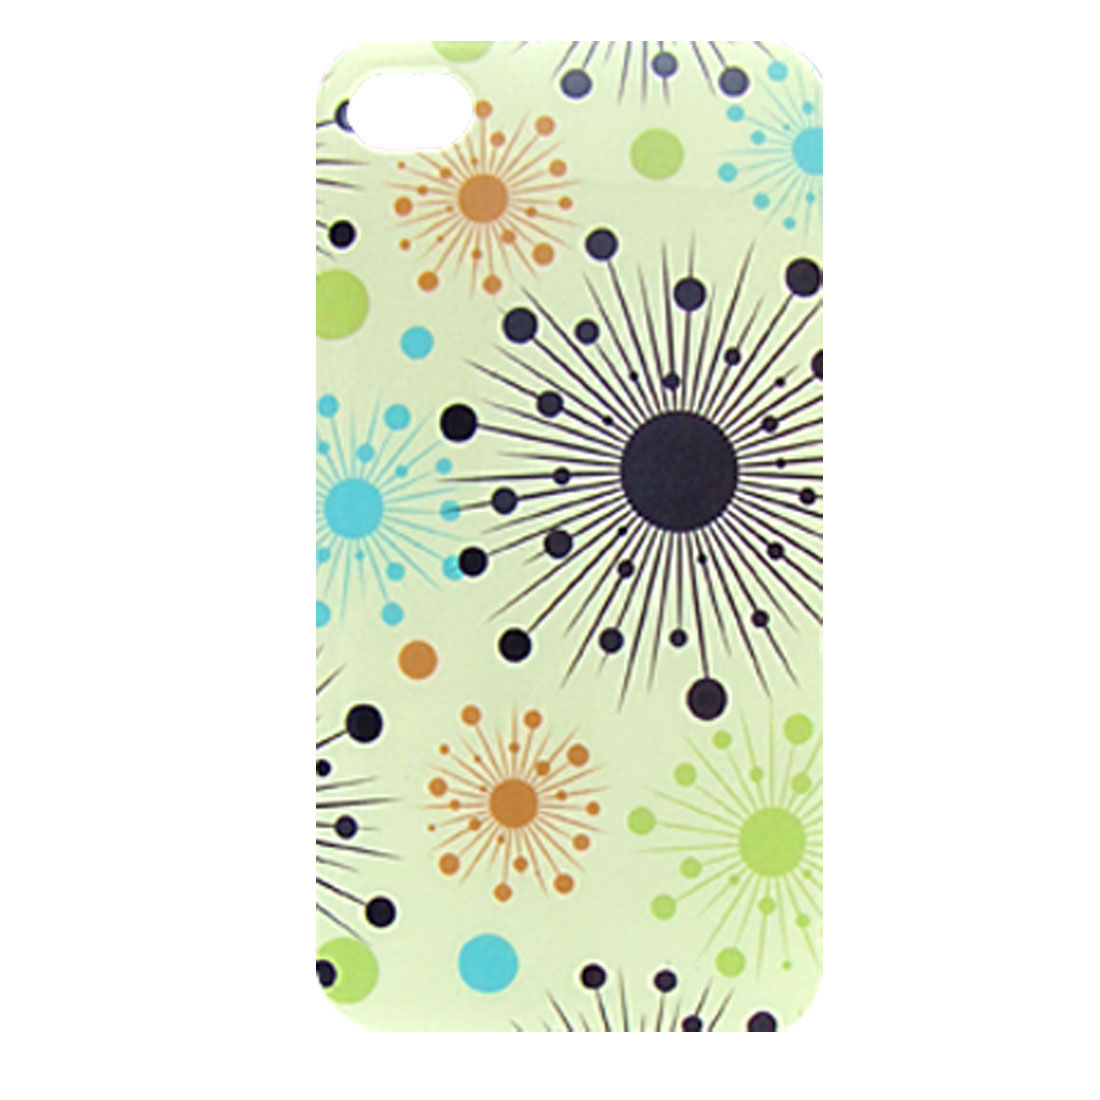 Hard Plastic IMD Sunshine Back Case Cover Pale Green for iPhone 4 4G